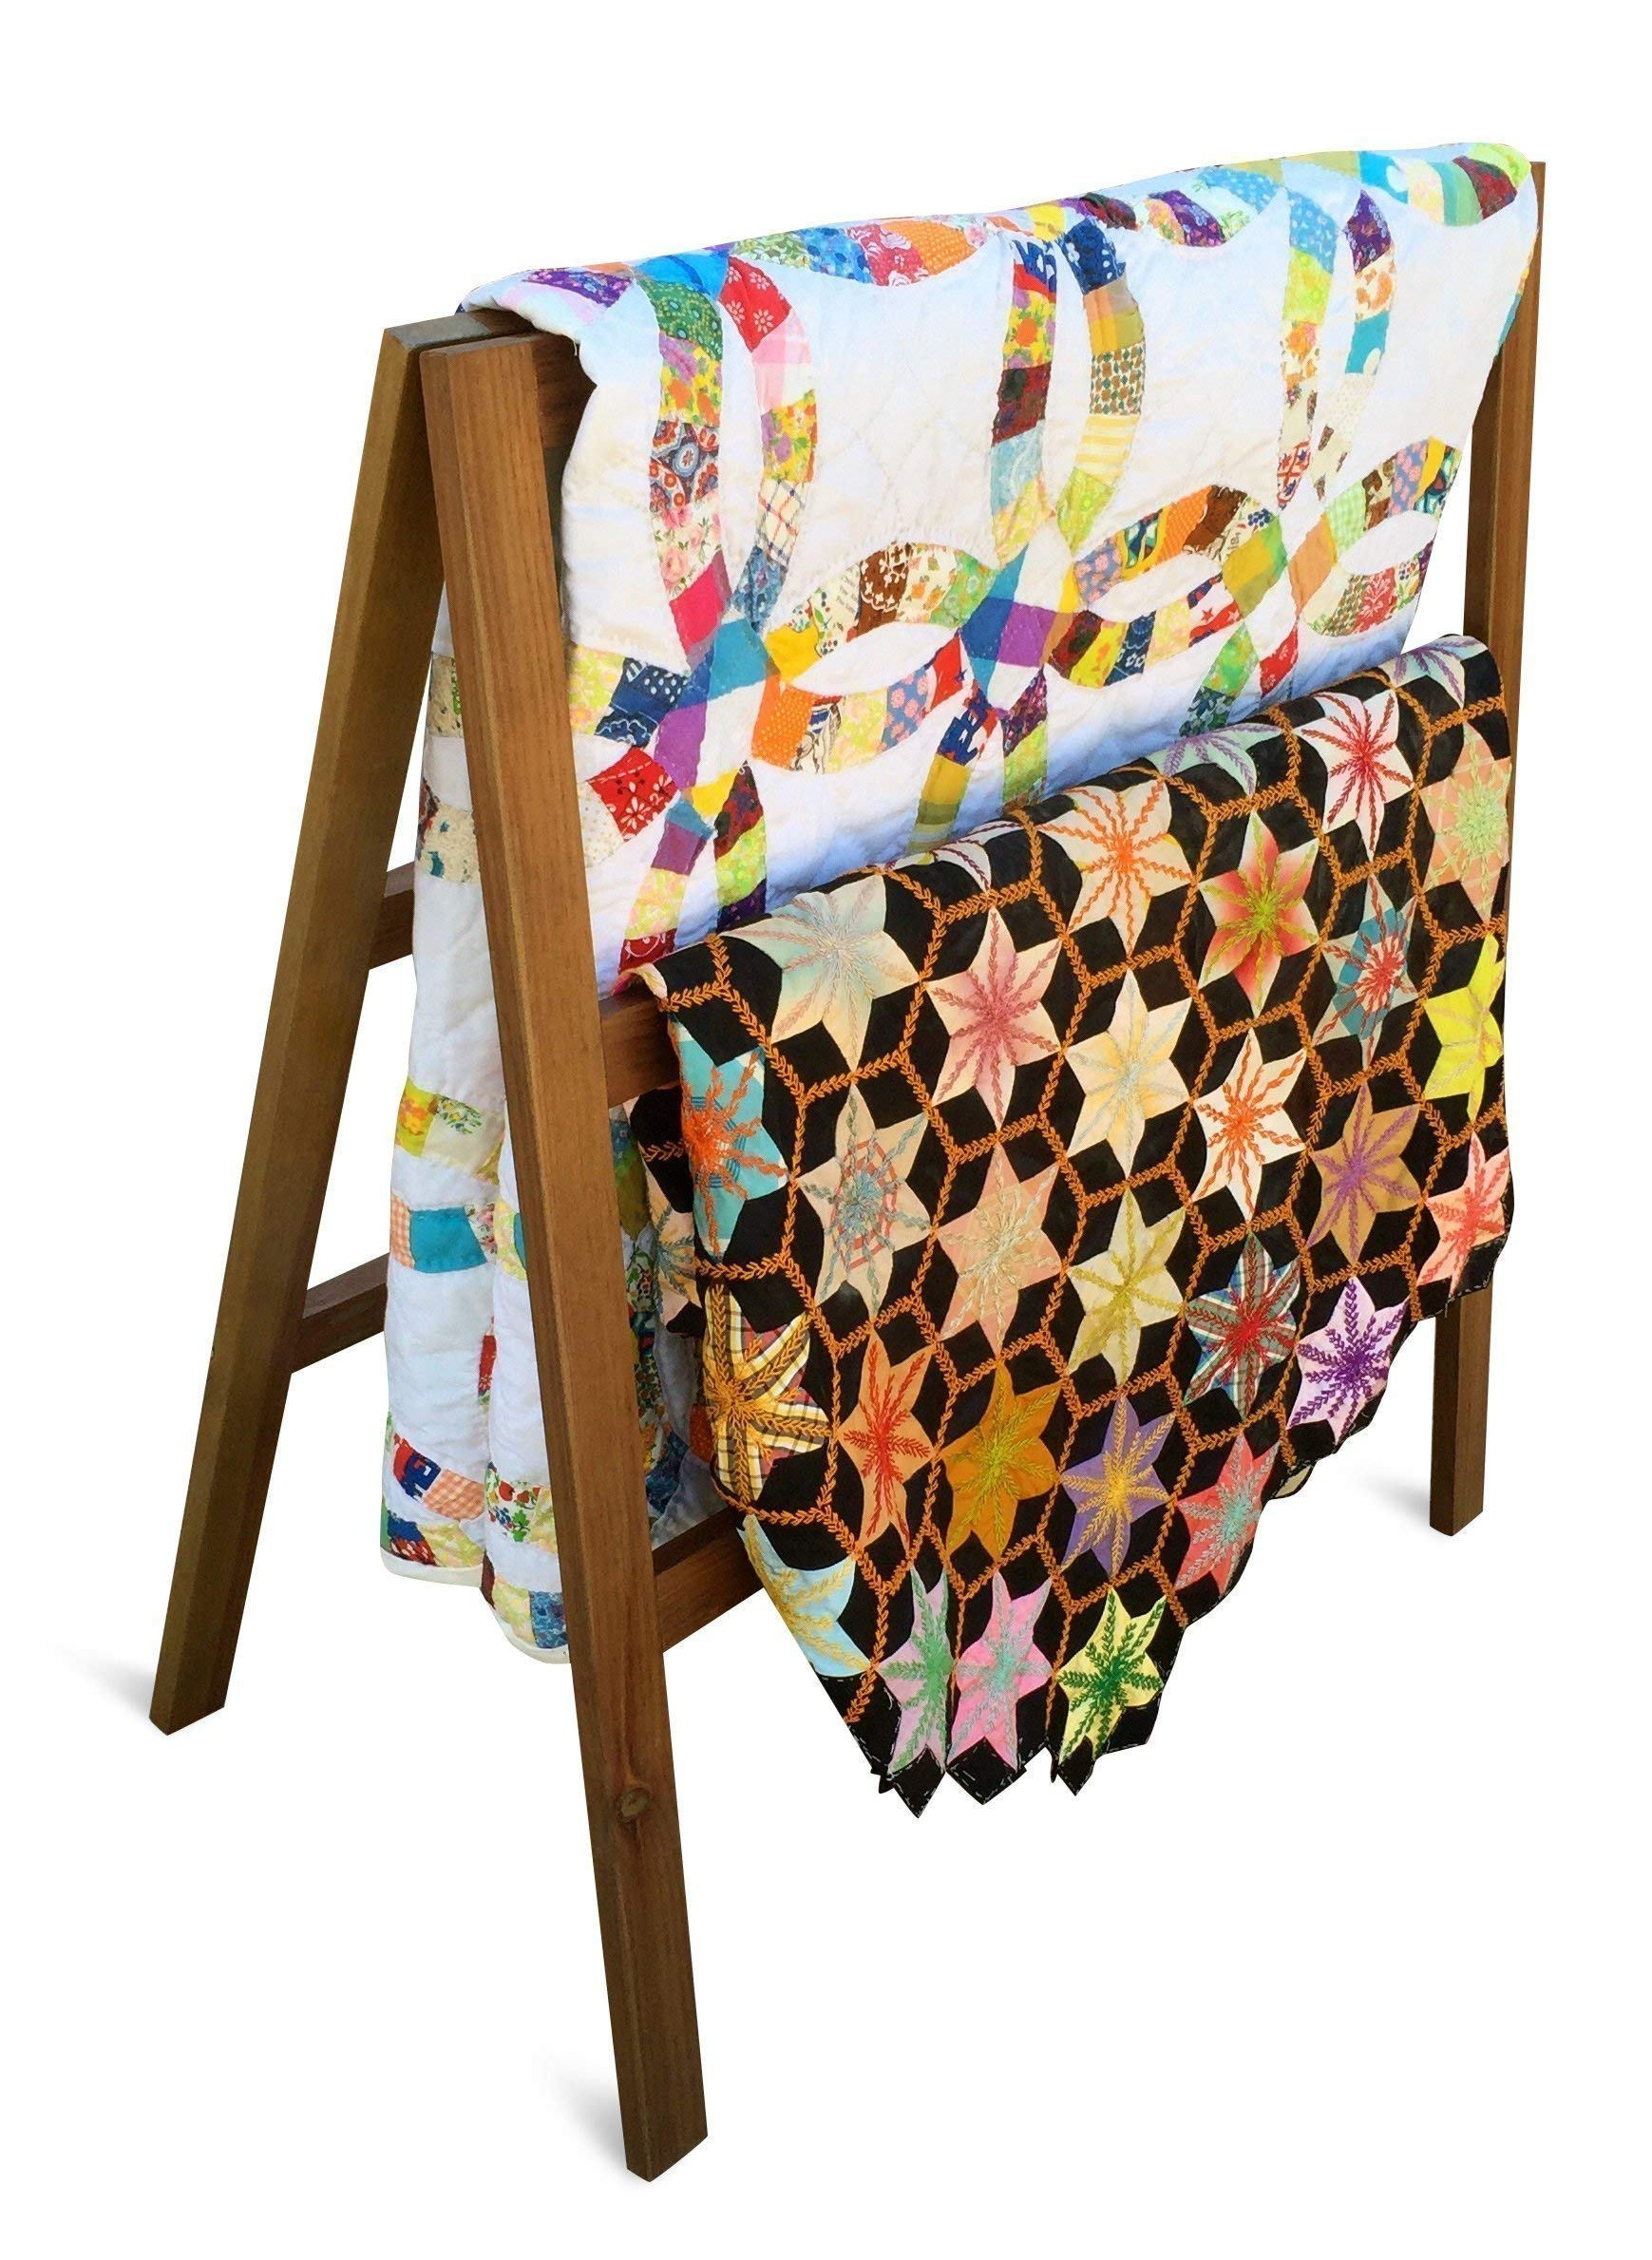 Premium Quilt Rack - 3-Tier Quilt Ladder Holds 5 Blankets or Afghans for Vender Displays - Great for Pillows, Shams and a Comforter- Folds Flat for Storage, Non-Toxic Finish. Handcrafted in the USA! by Ozarks Fehr Trade Originals, LLC